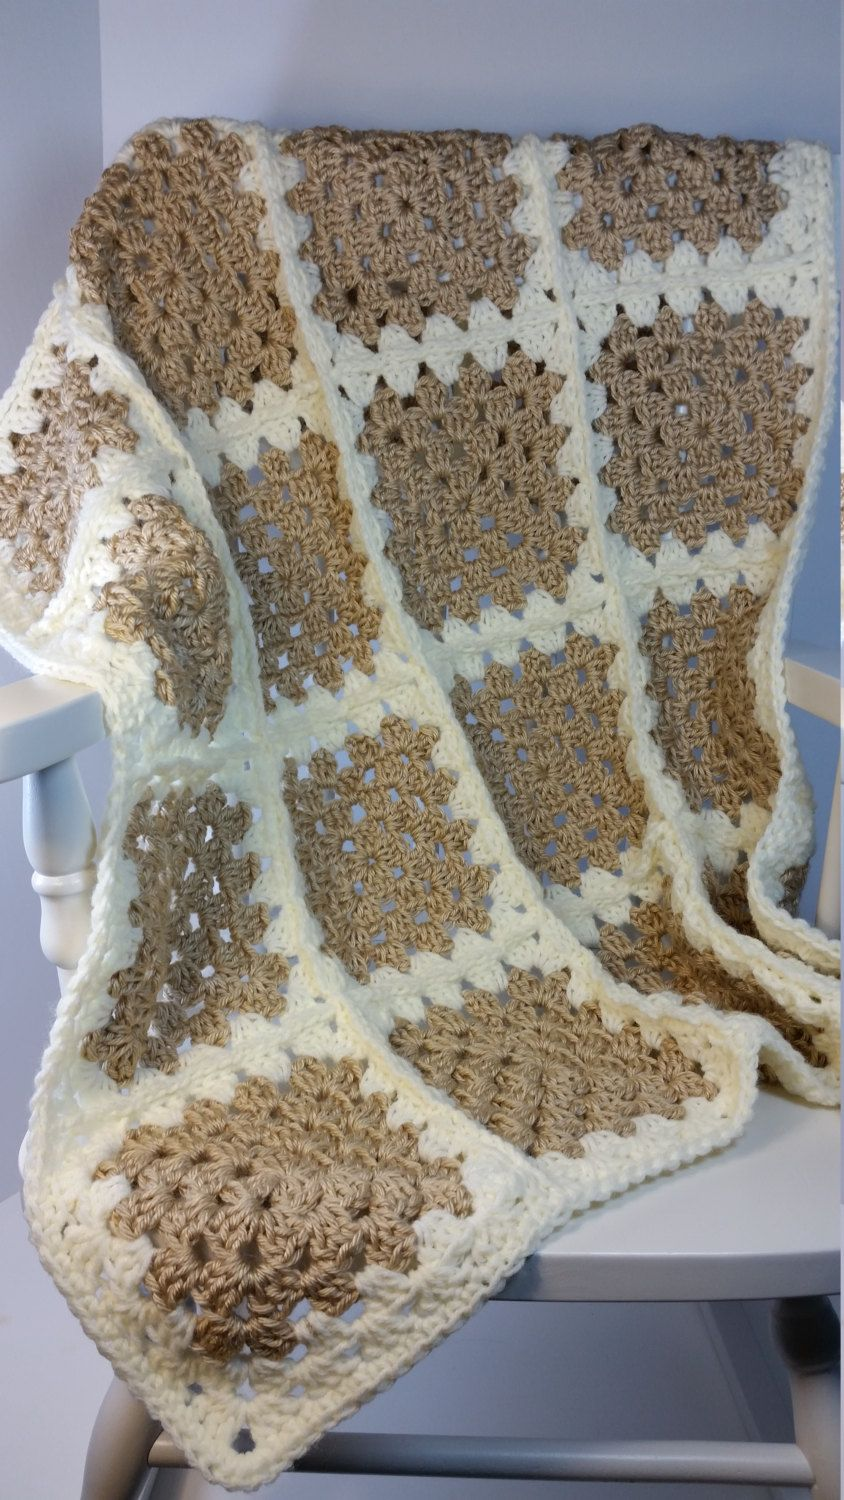 Car baby boy blanket crochet blanket by prairieheartstrings - Crochet Baby Blanket Beige Creme Granny Square Stroller Size Car Seat Cover Ready To Ship